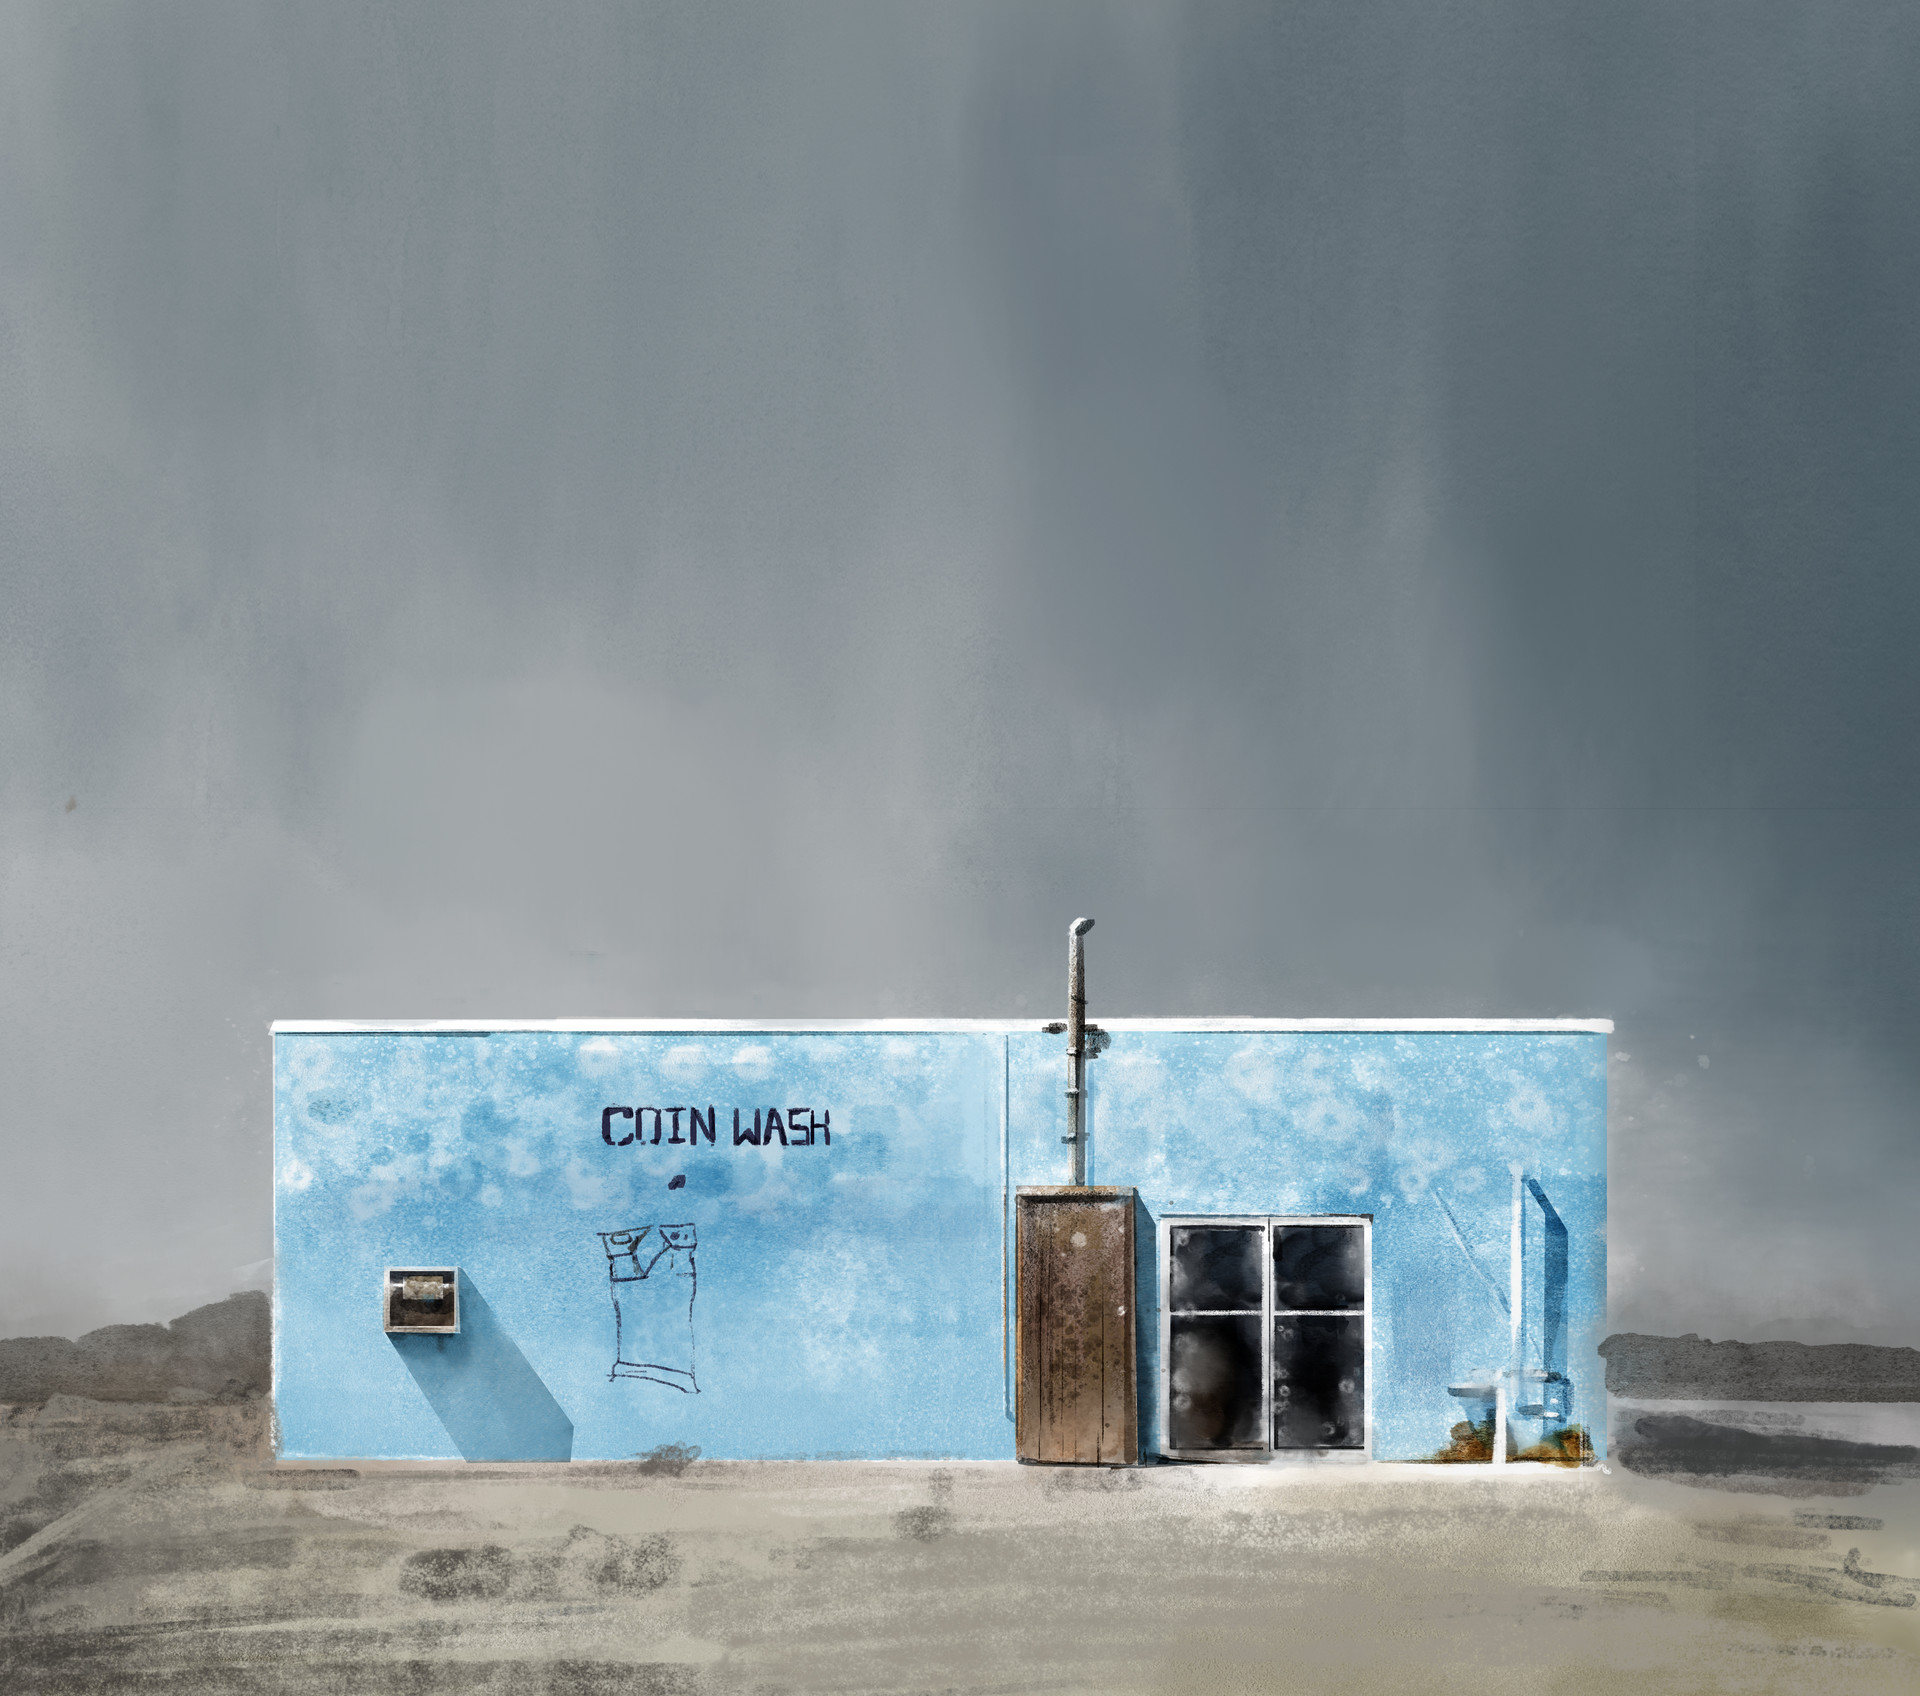 Study Ed Freeman's photography by using Kyle T. Webster's watercolor brushes...